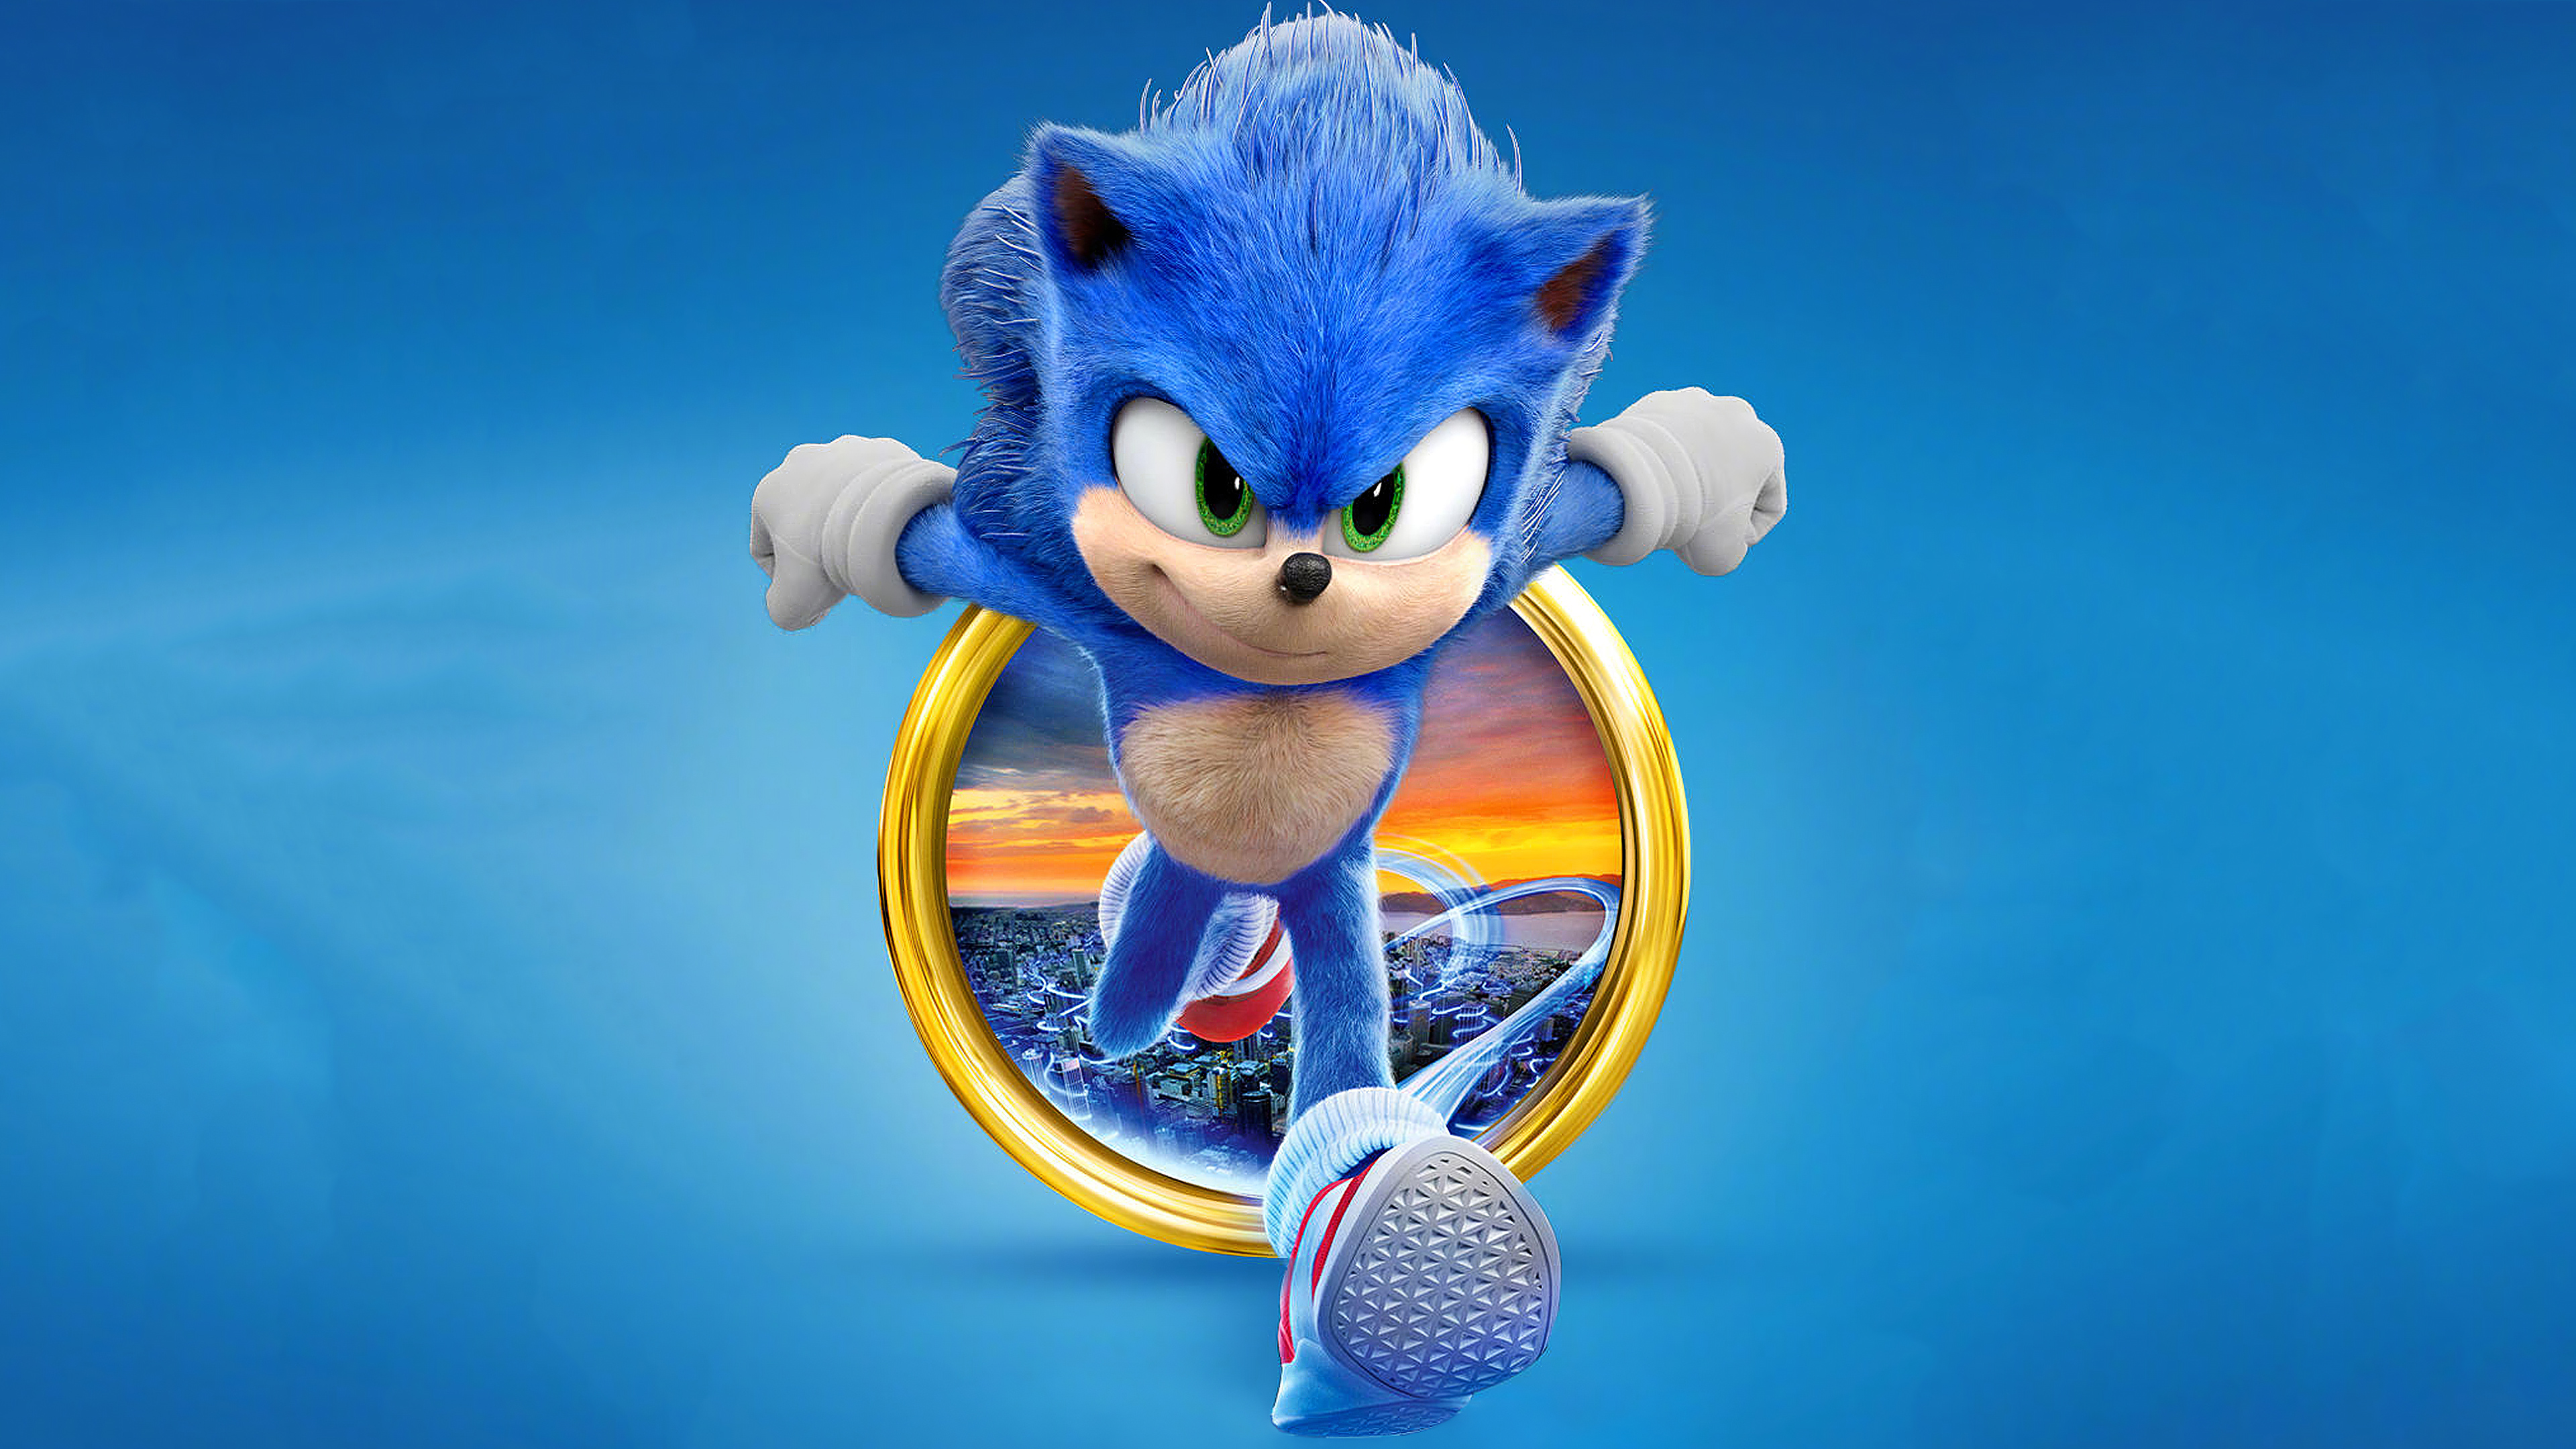 sonic the hedgehog 2020 1582152424 - Sonic The Hedgehog 2020 - Sonic The Hedgehog 2020 wallpapers, Sonic The Hedgehog 2020 4k wallpapers, Sonic movie wallpapers 4k